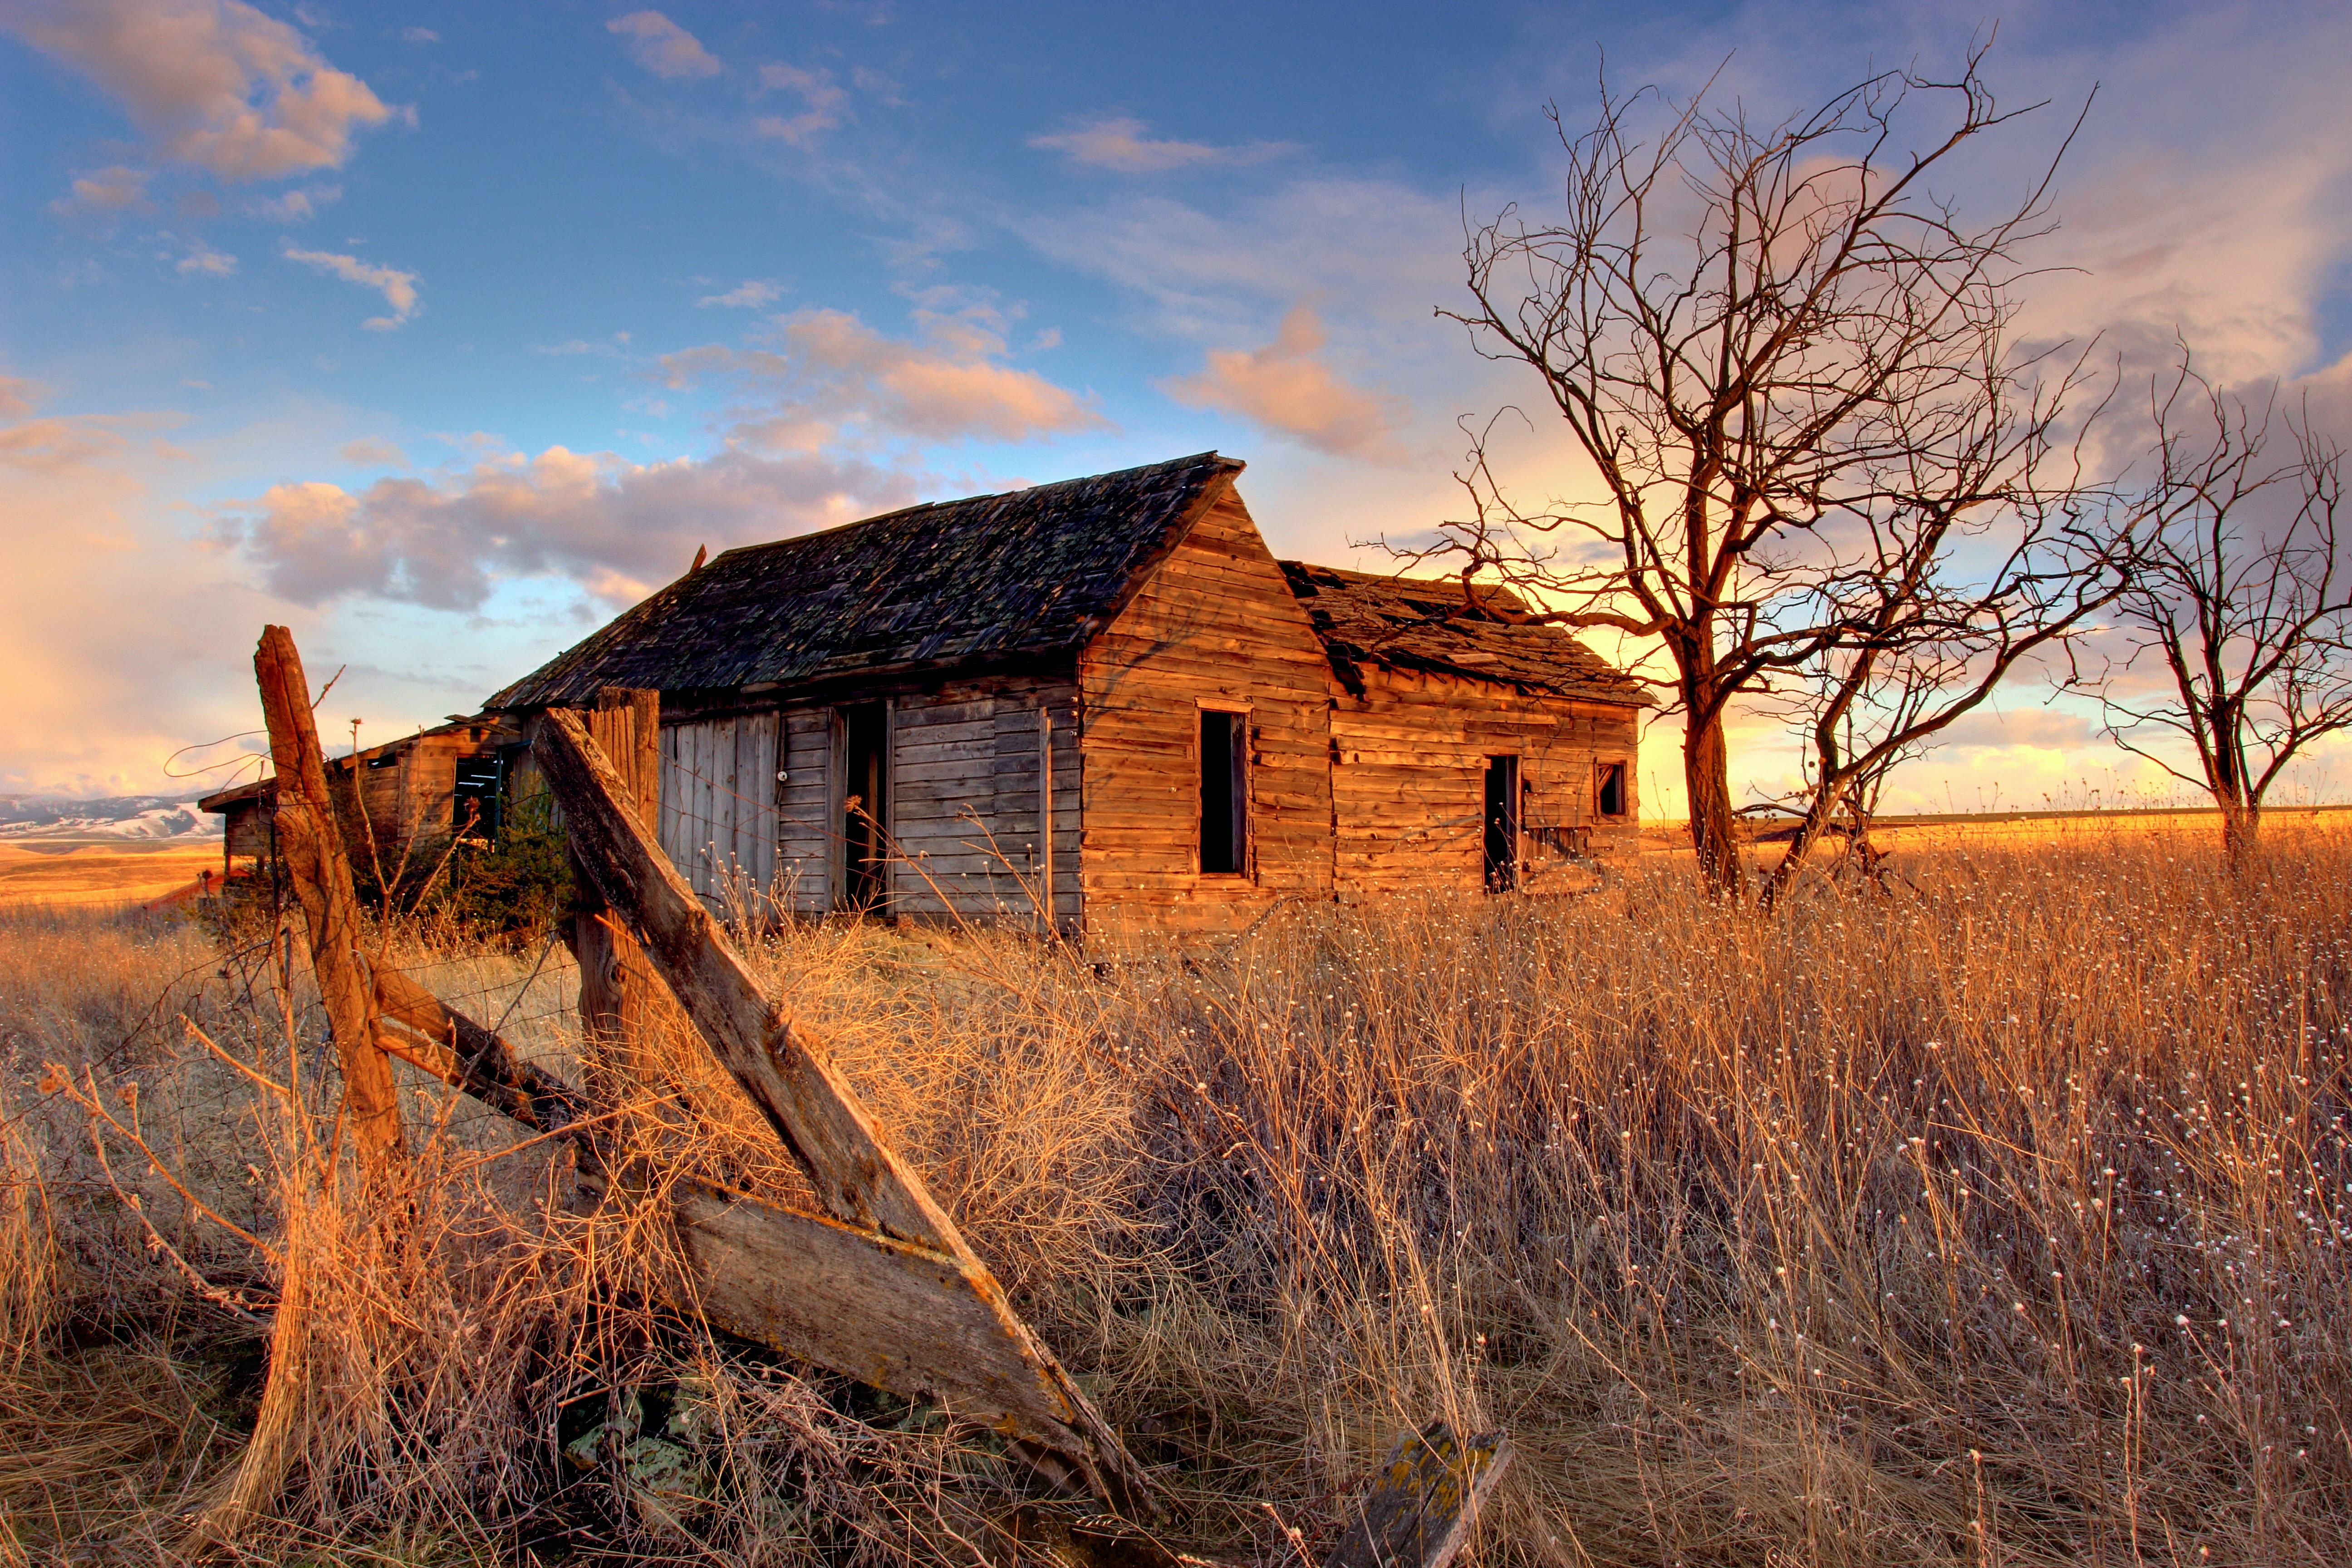 Abandoned cabin in a desolate grassy field in the country